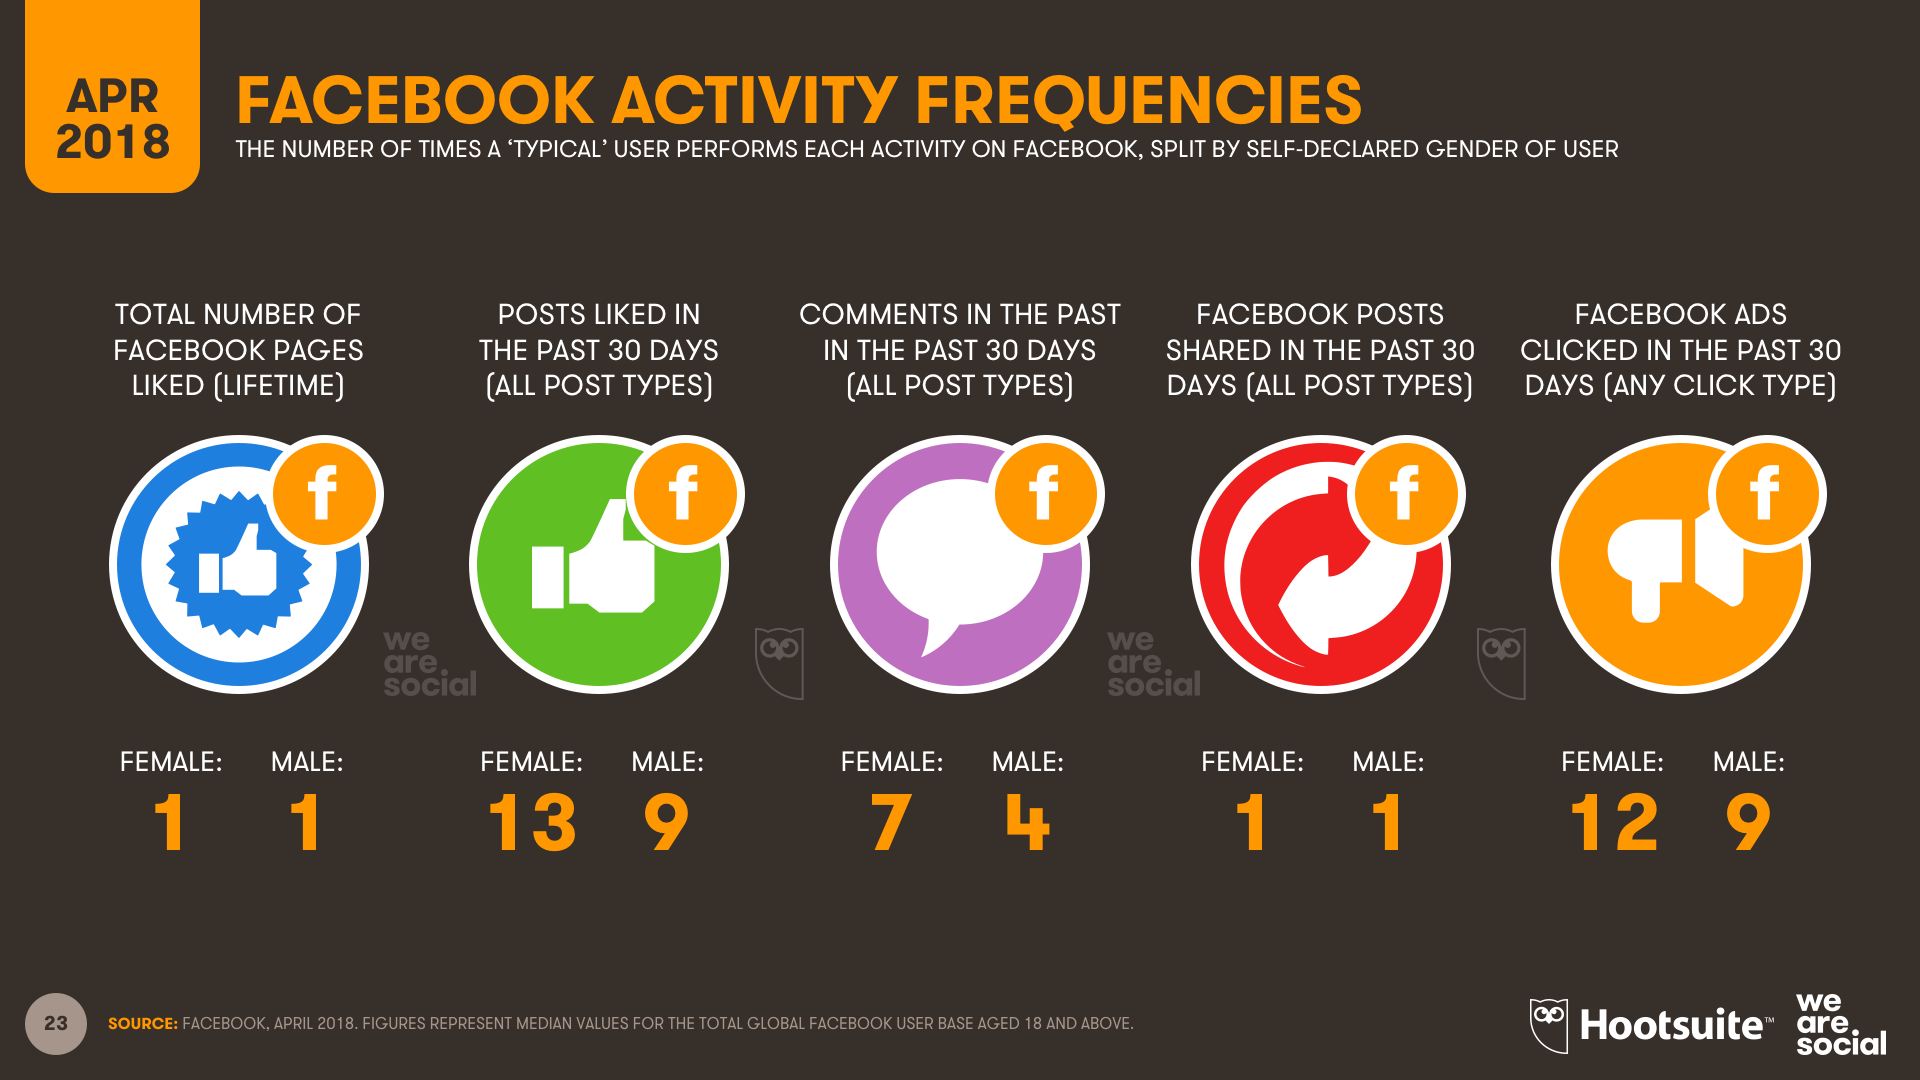 Facebook Activities of Typical Users, April 2018